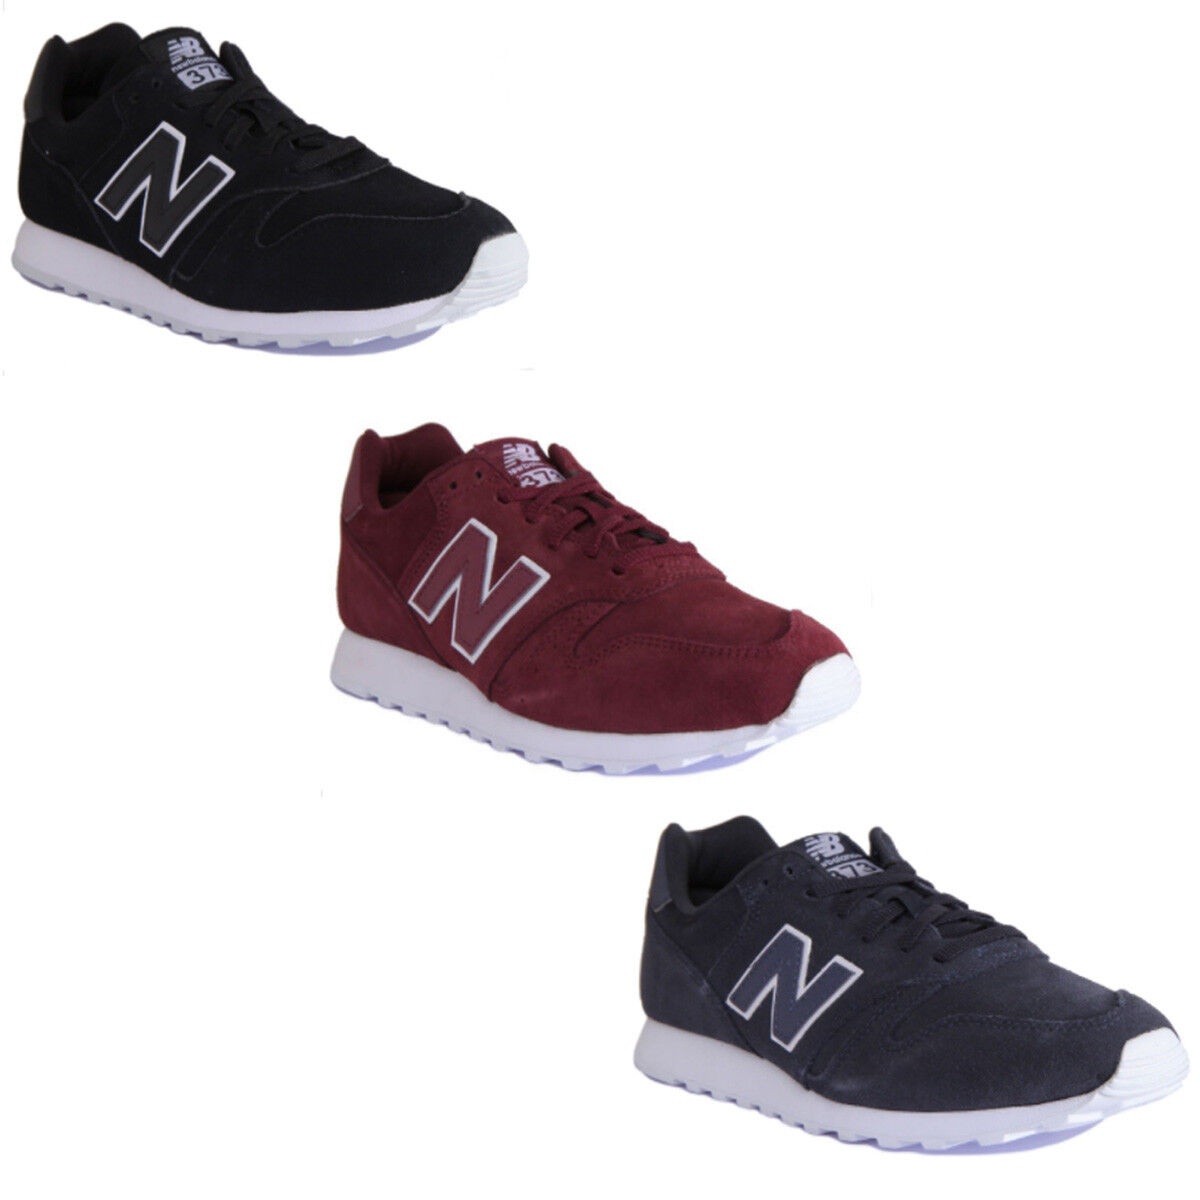 New Balance MI373TP Modern Classic damen Suede Leather Burgundy Trainers 3-6.5